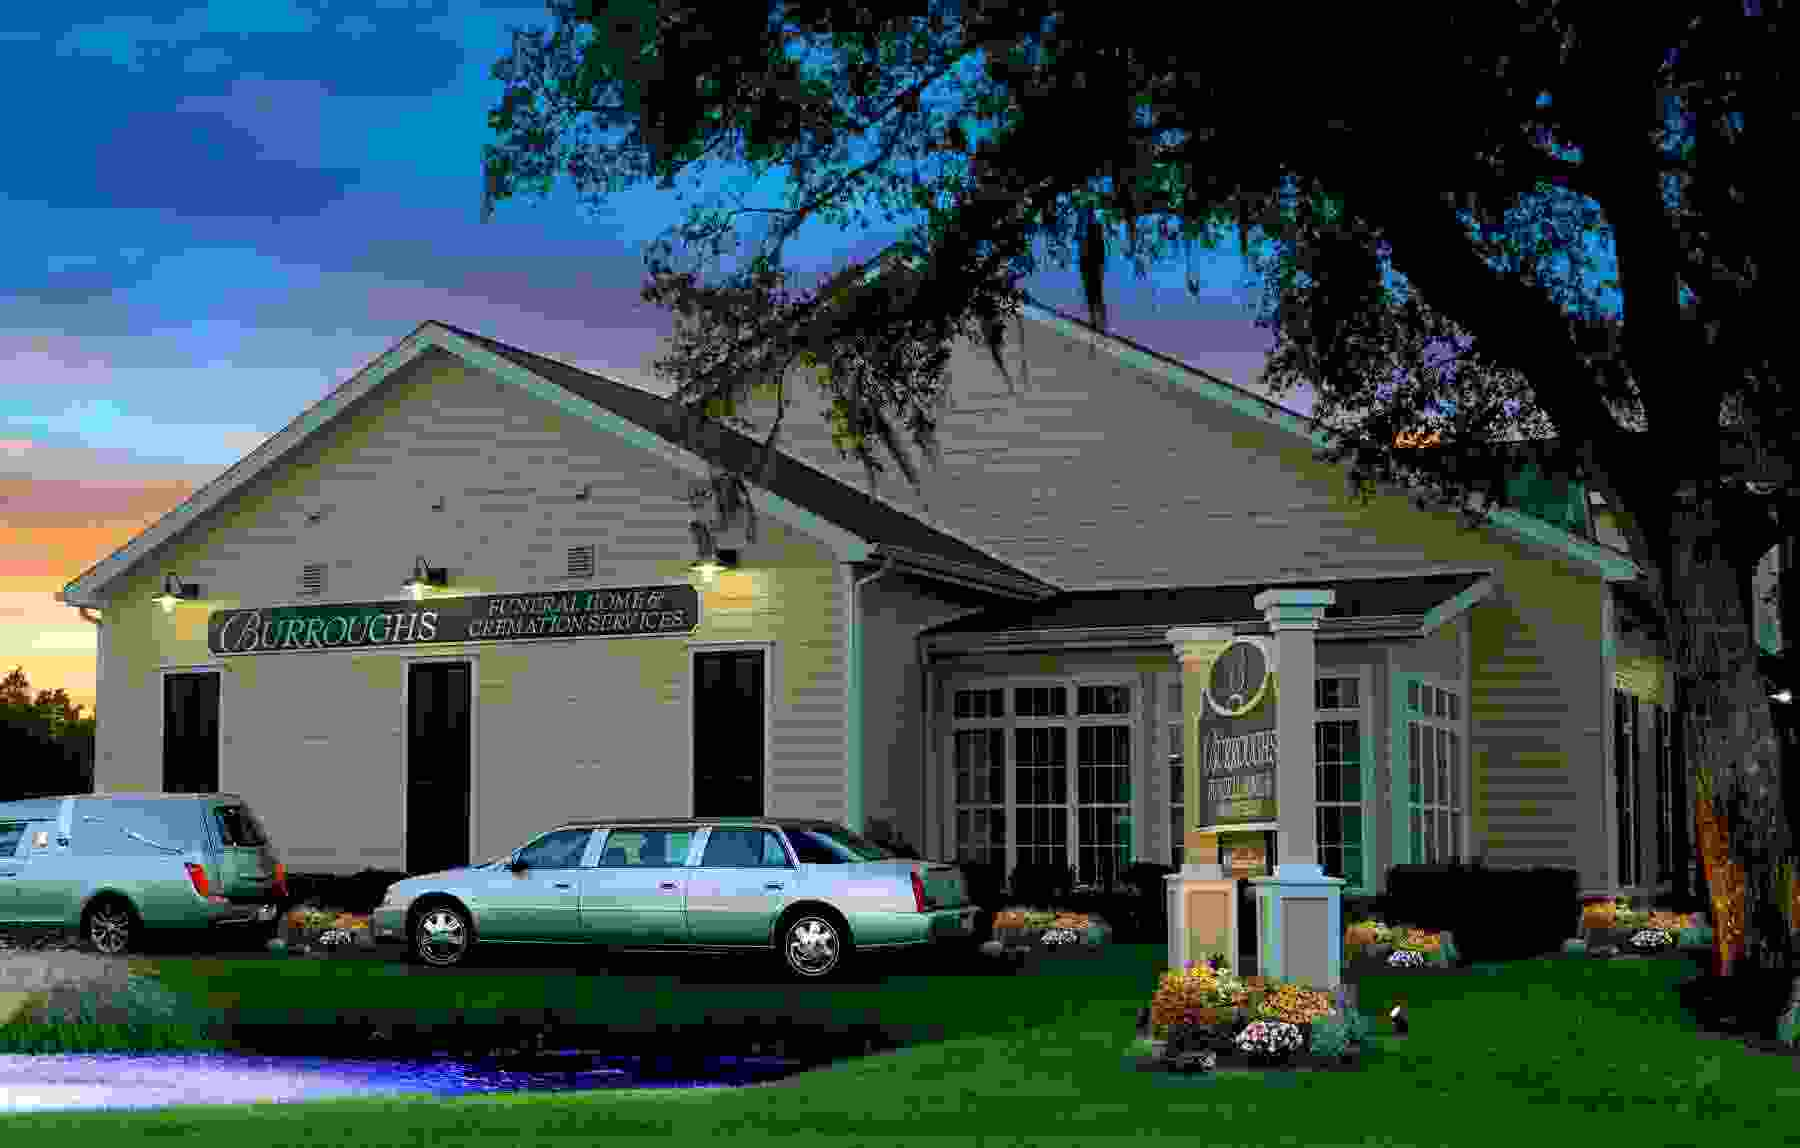 Burroughs Funeral Home